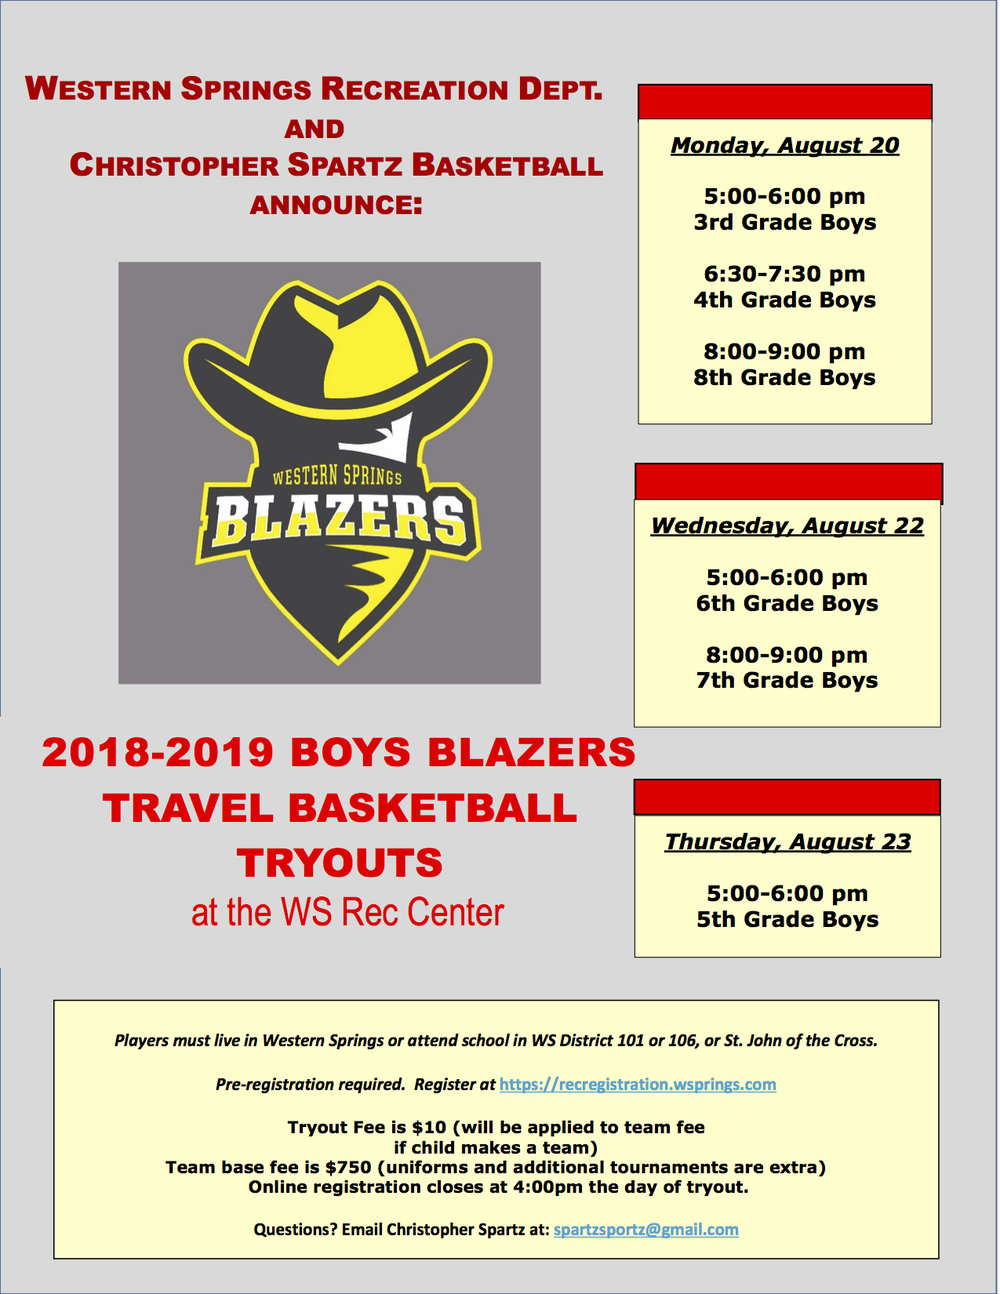 2018-2019 blazers winter travel tryout flyer.jpg